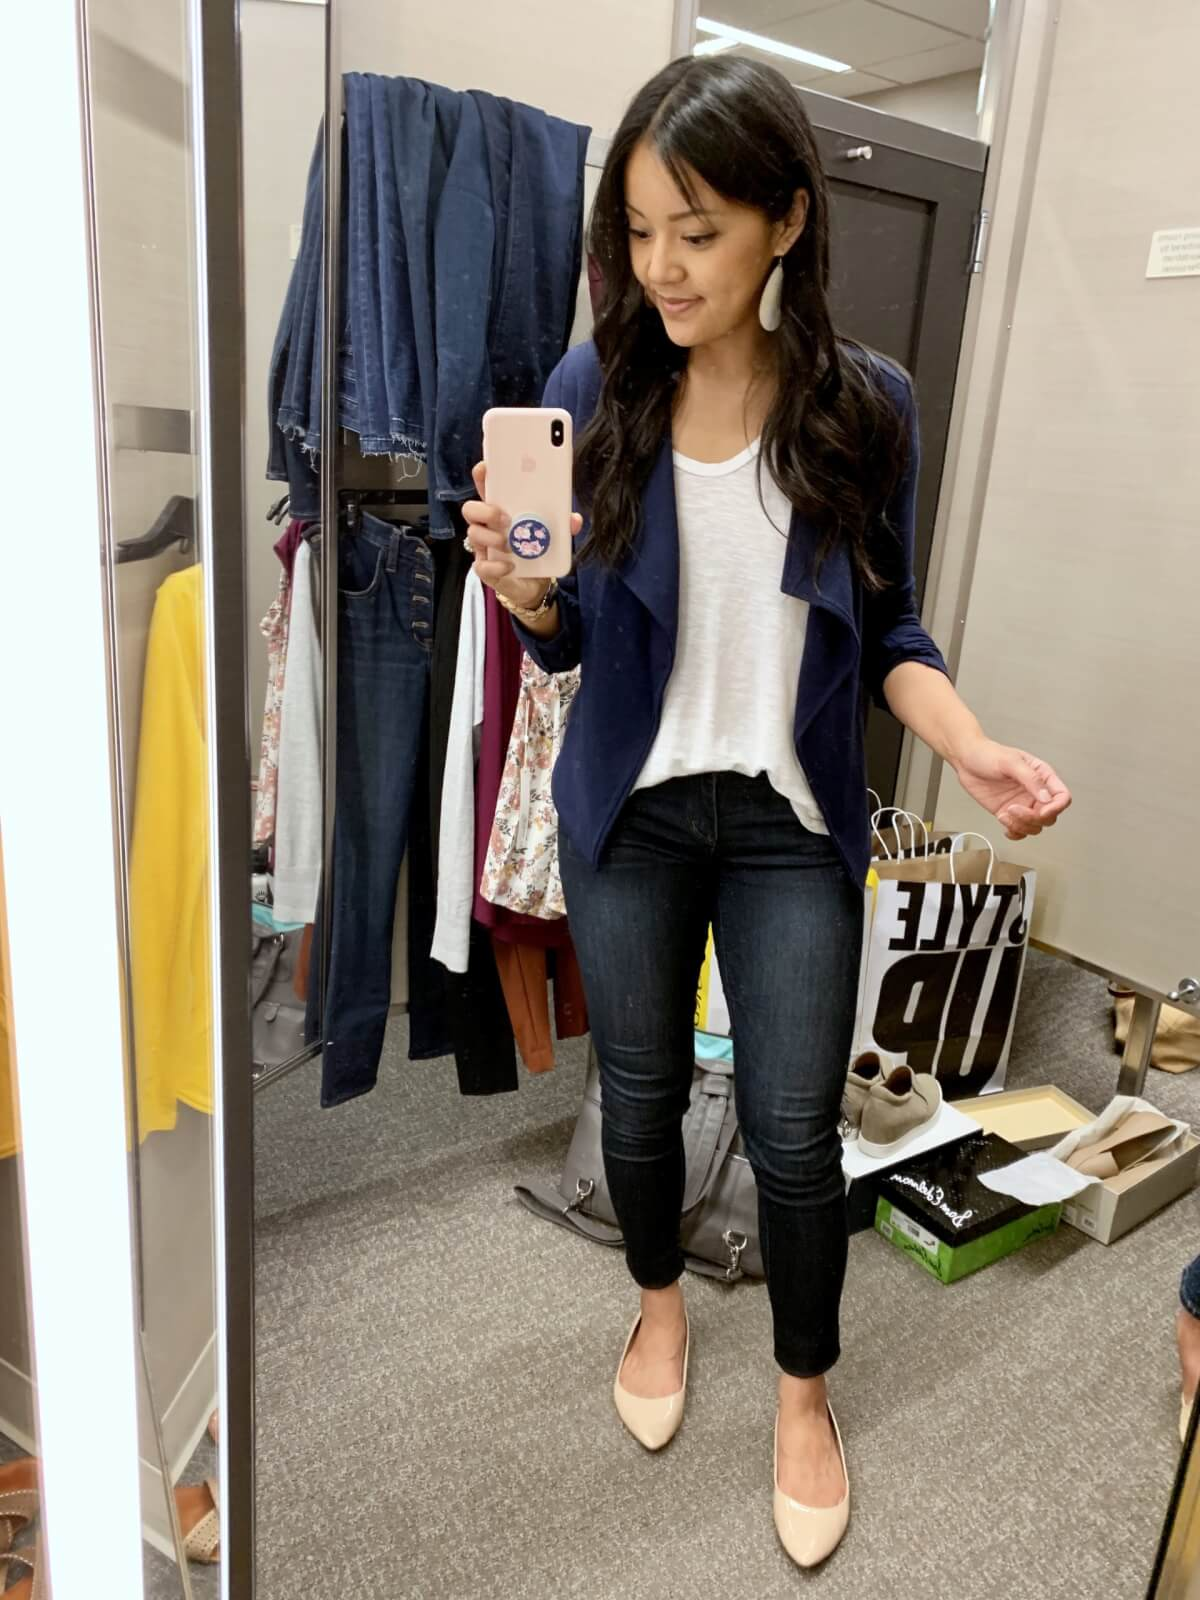 Elevated Casual Outfit: white tee + navy knit blazer + dark skinny jeans + nude flats + gold leather earrings